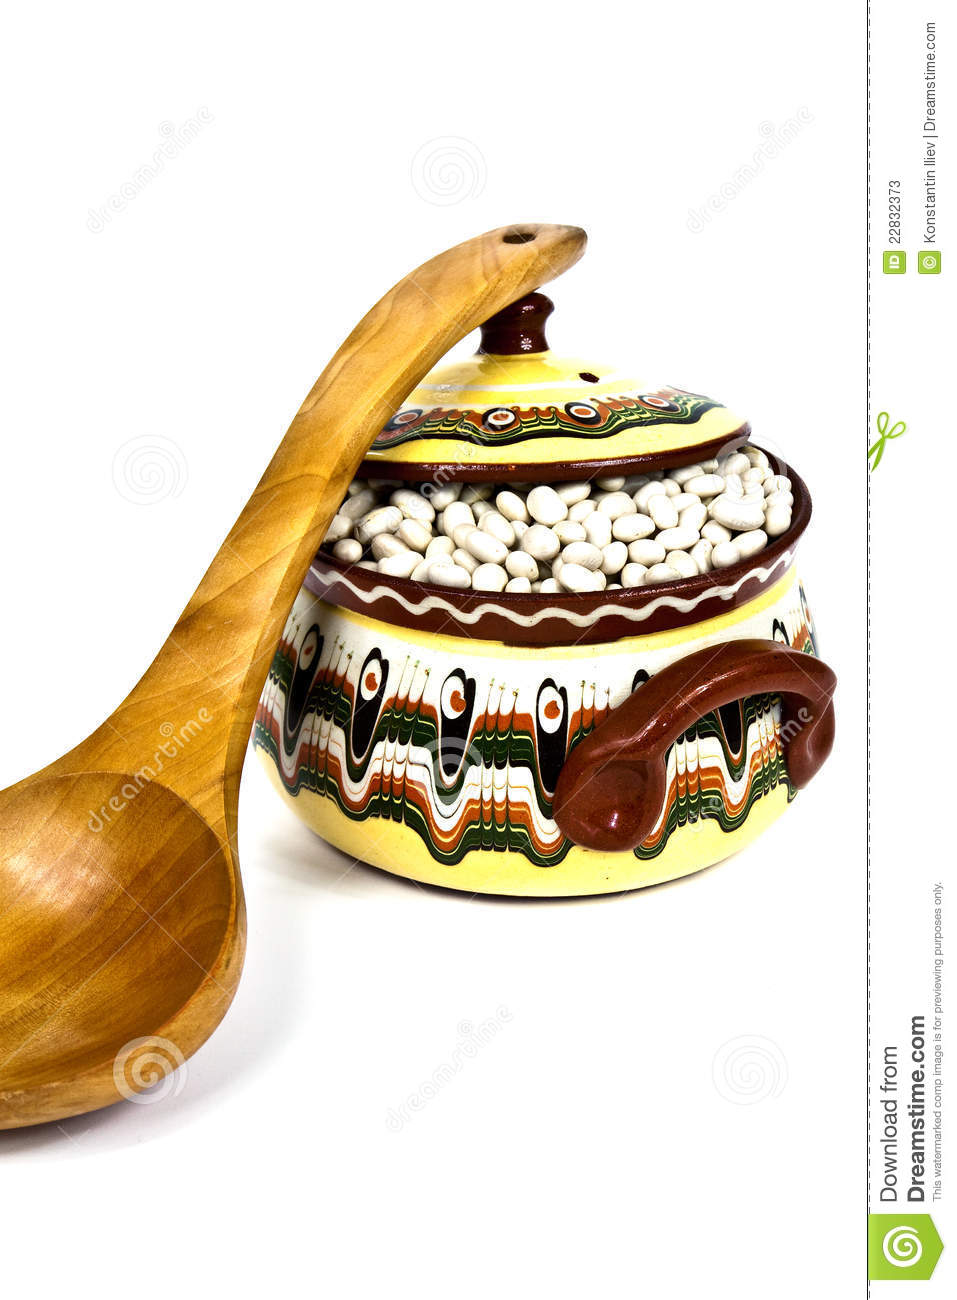 Colorful Spoons: Wooden Spoon And Colorful Ceramic Pot Stock Photos